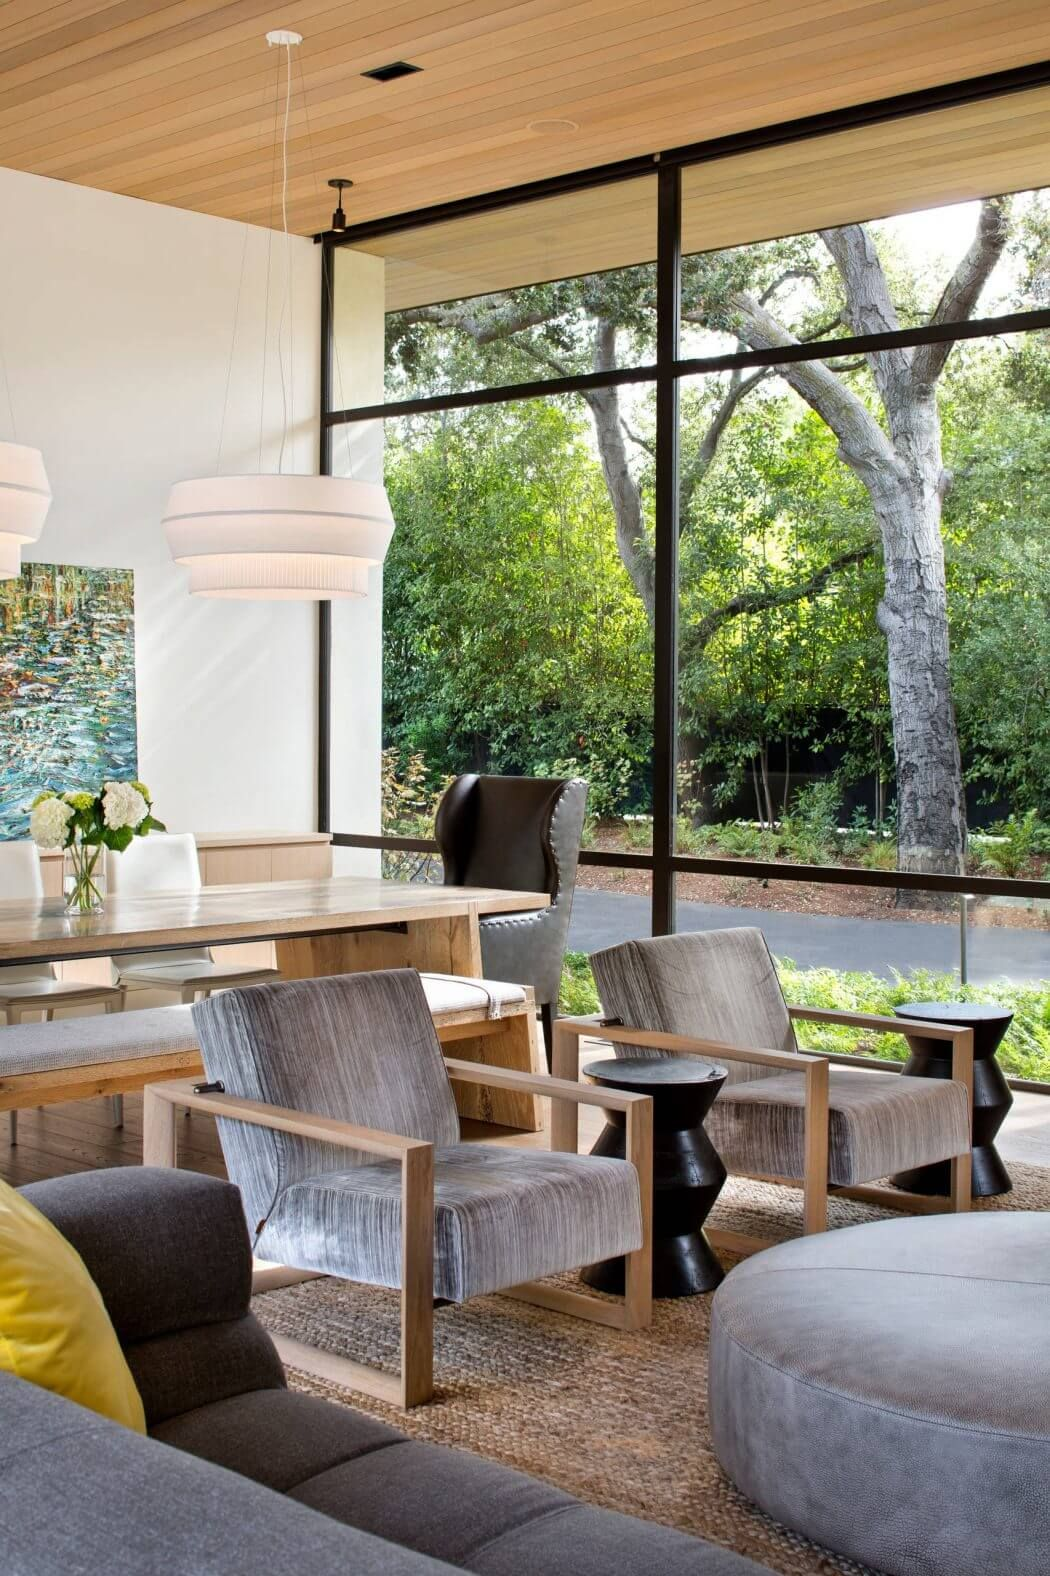 Atherton Avenue Residence by Arcanum Architecture in Atherton ... on emerald home furniture, williams home furniture, tracy home furniture, madera home furniture, davis home furniture,